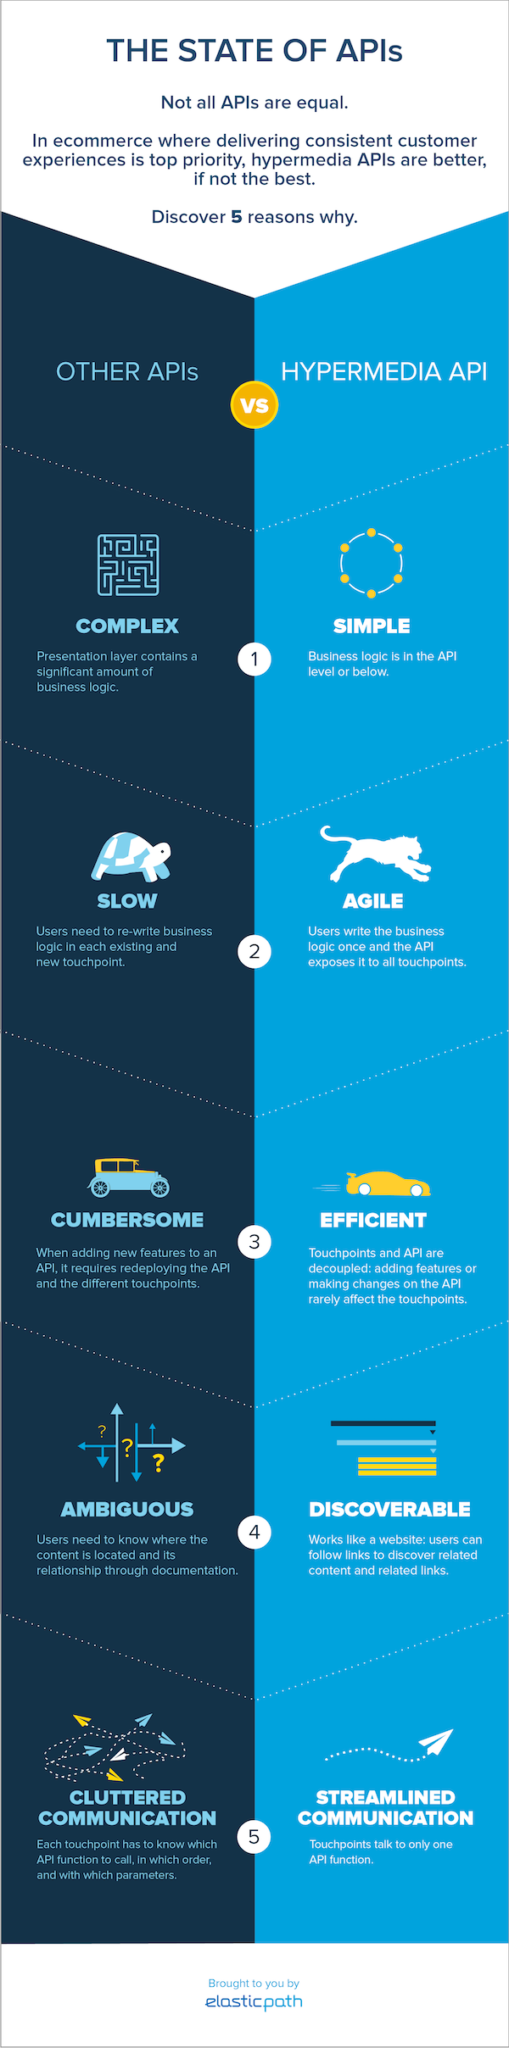 The State of APIs: A Cheat-Sheet Infographic